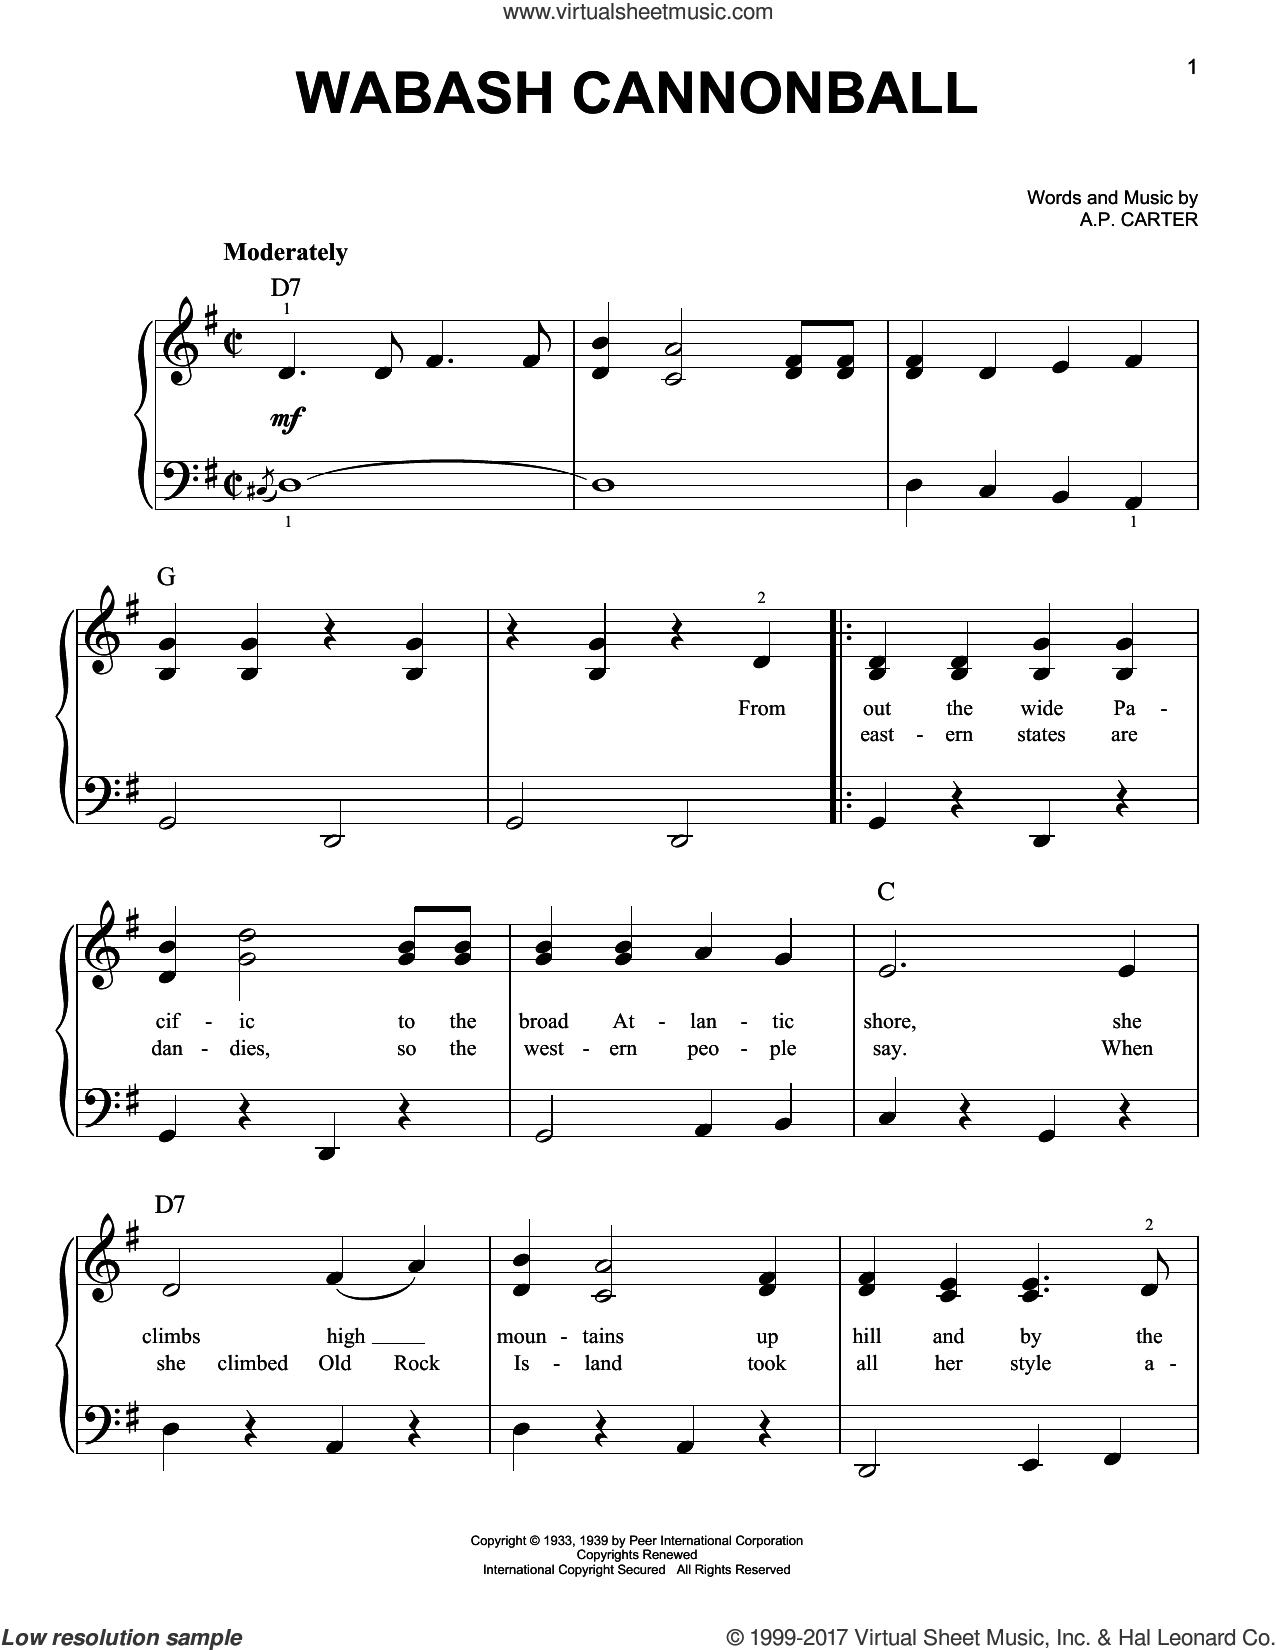 Wabash Cannonball sheet music for piano solo by The Carter Family and A.P. Carter, easy skill level